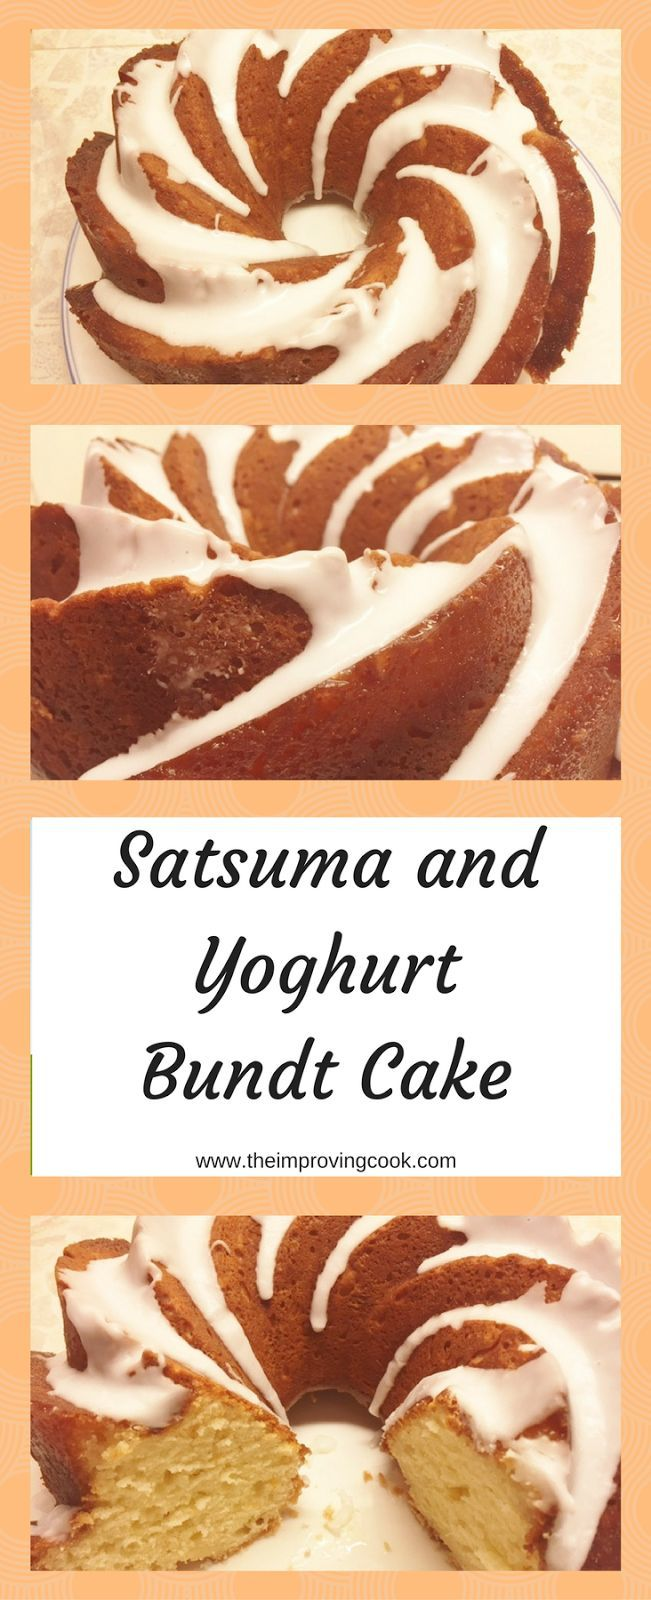 Satsuma and Yoghurt Bundt Cake- use up leftover satsumas to make this light, moist bundt cake. Also works as a loaf cake.